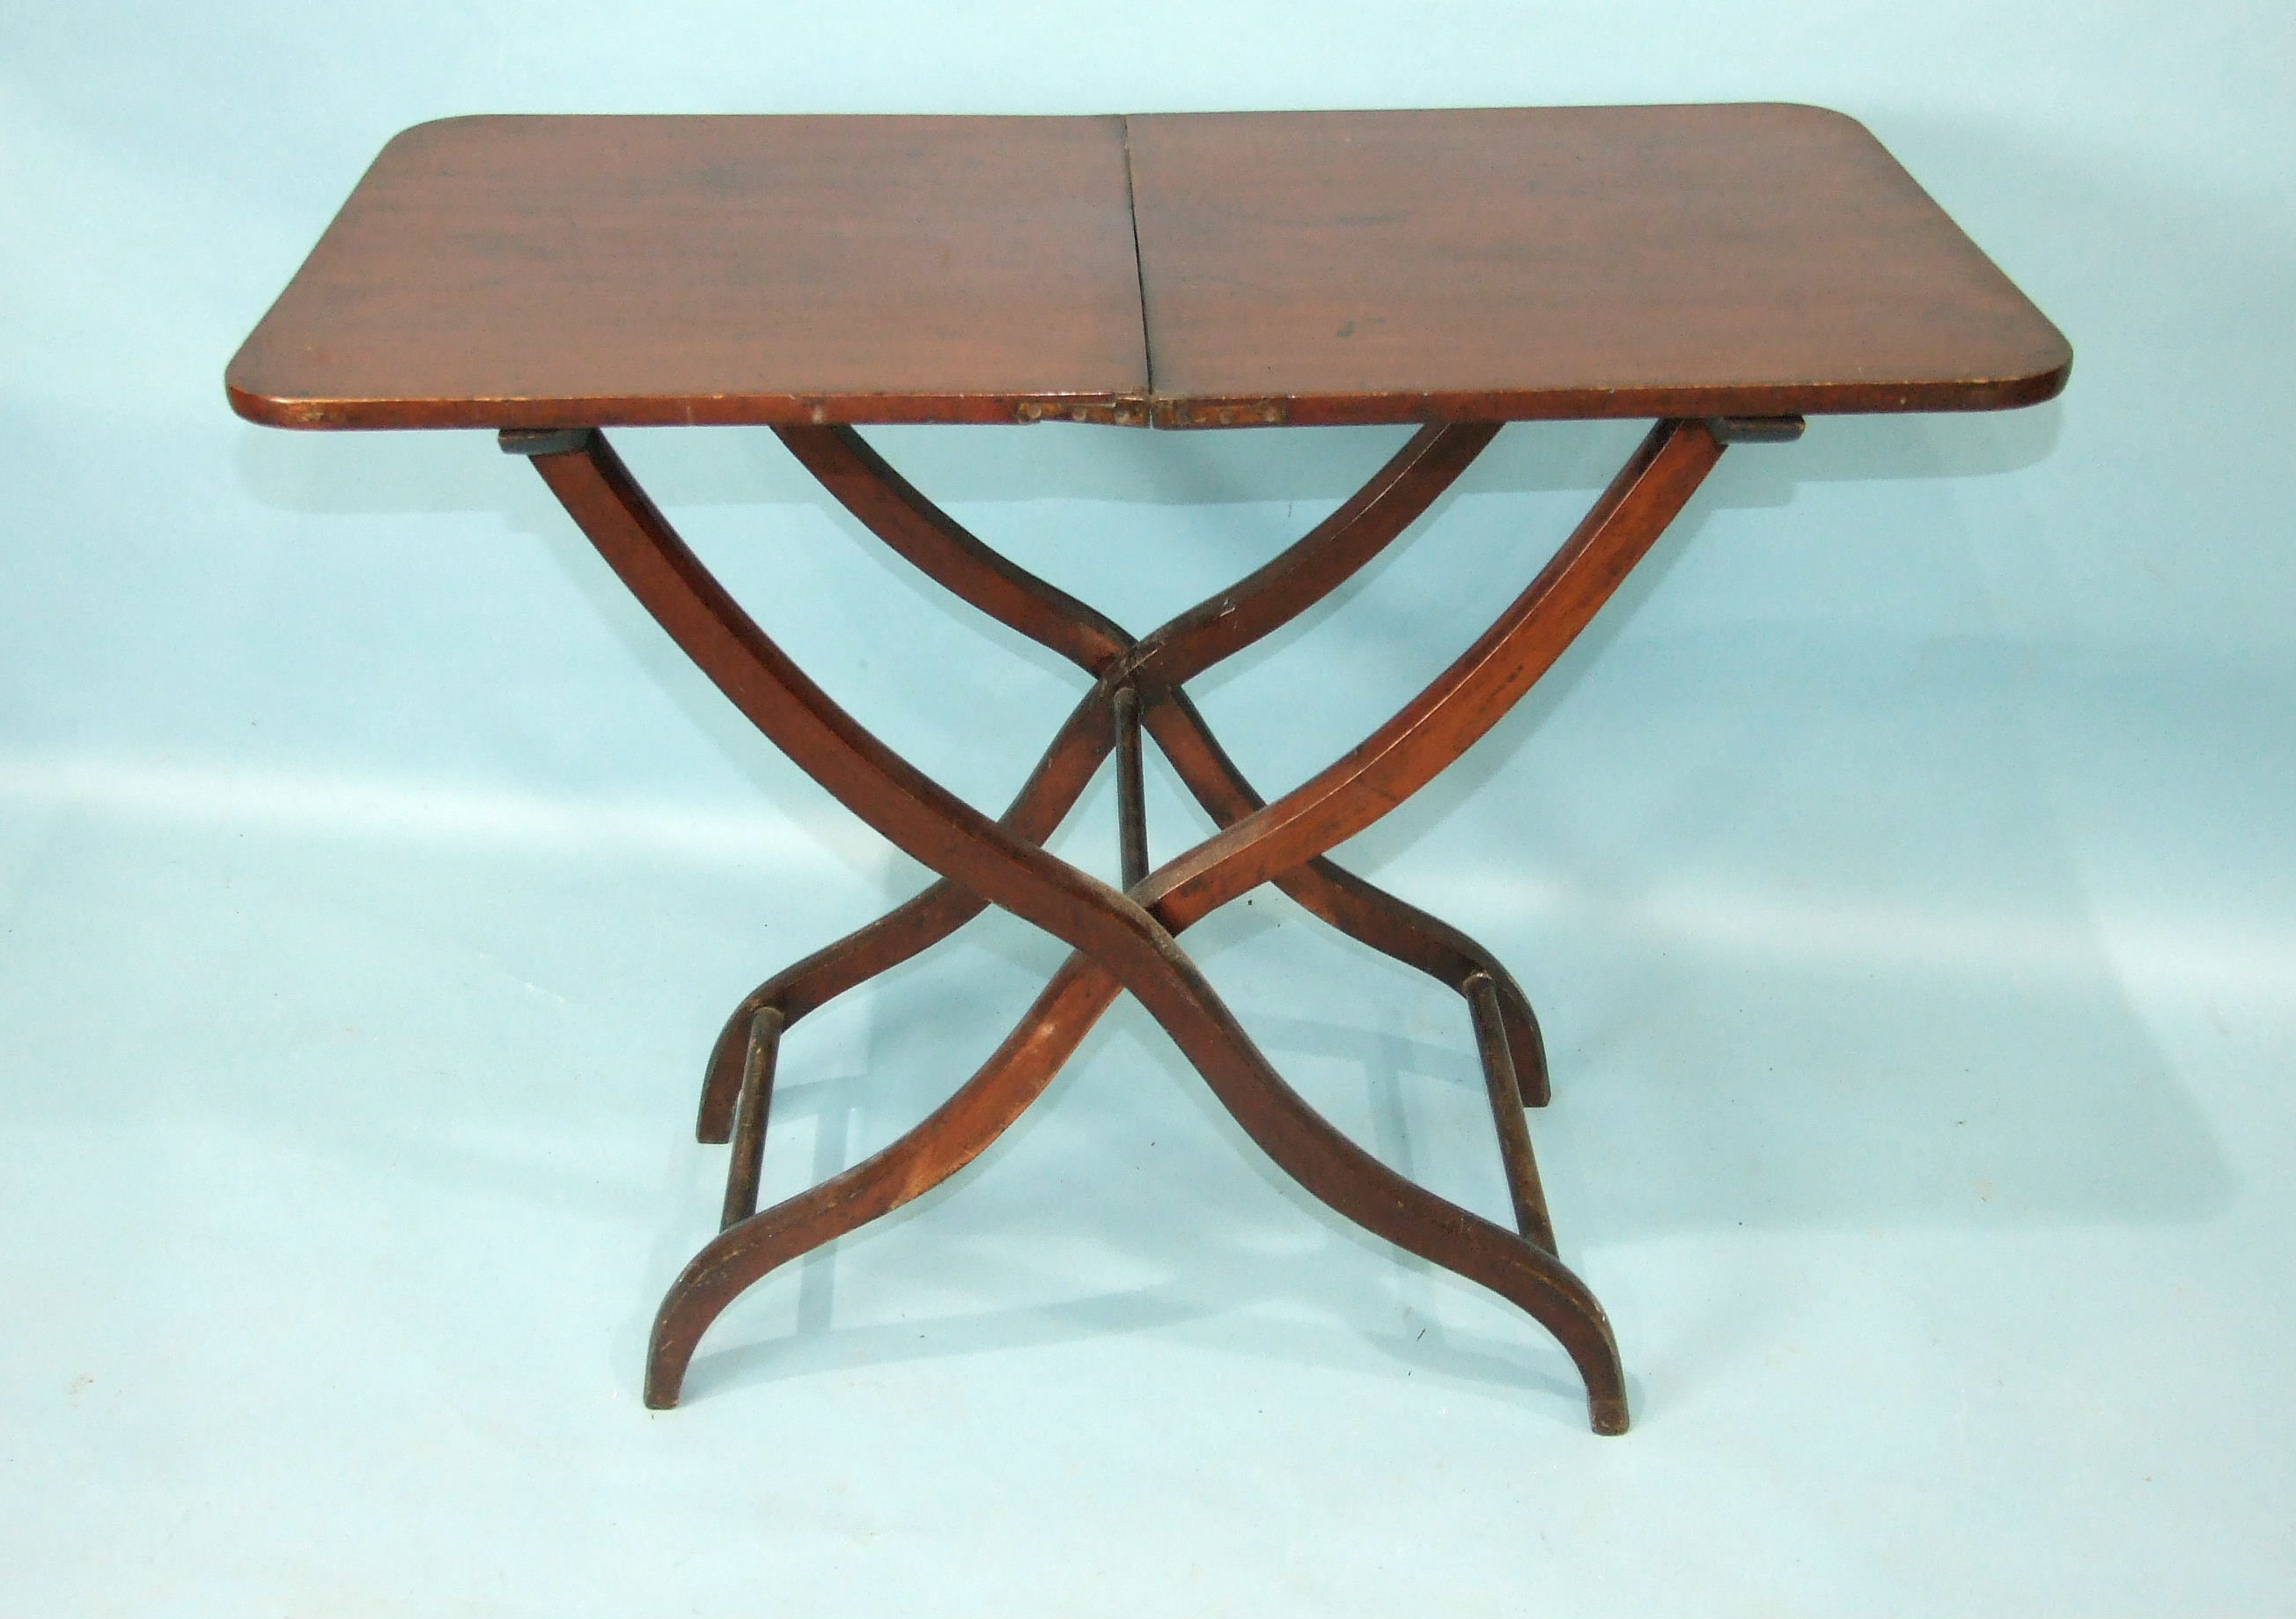 A 19th century mahogany hunting table, the rectangular folding top with flush hinges, on